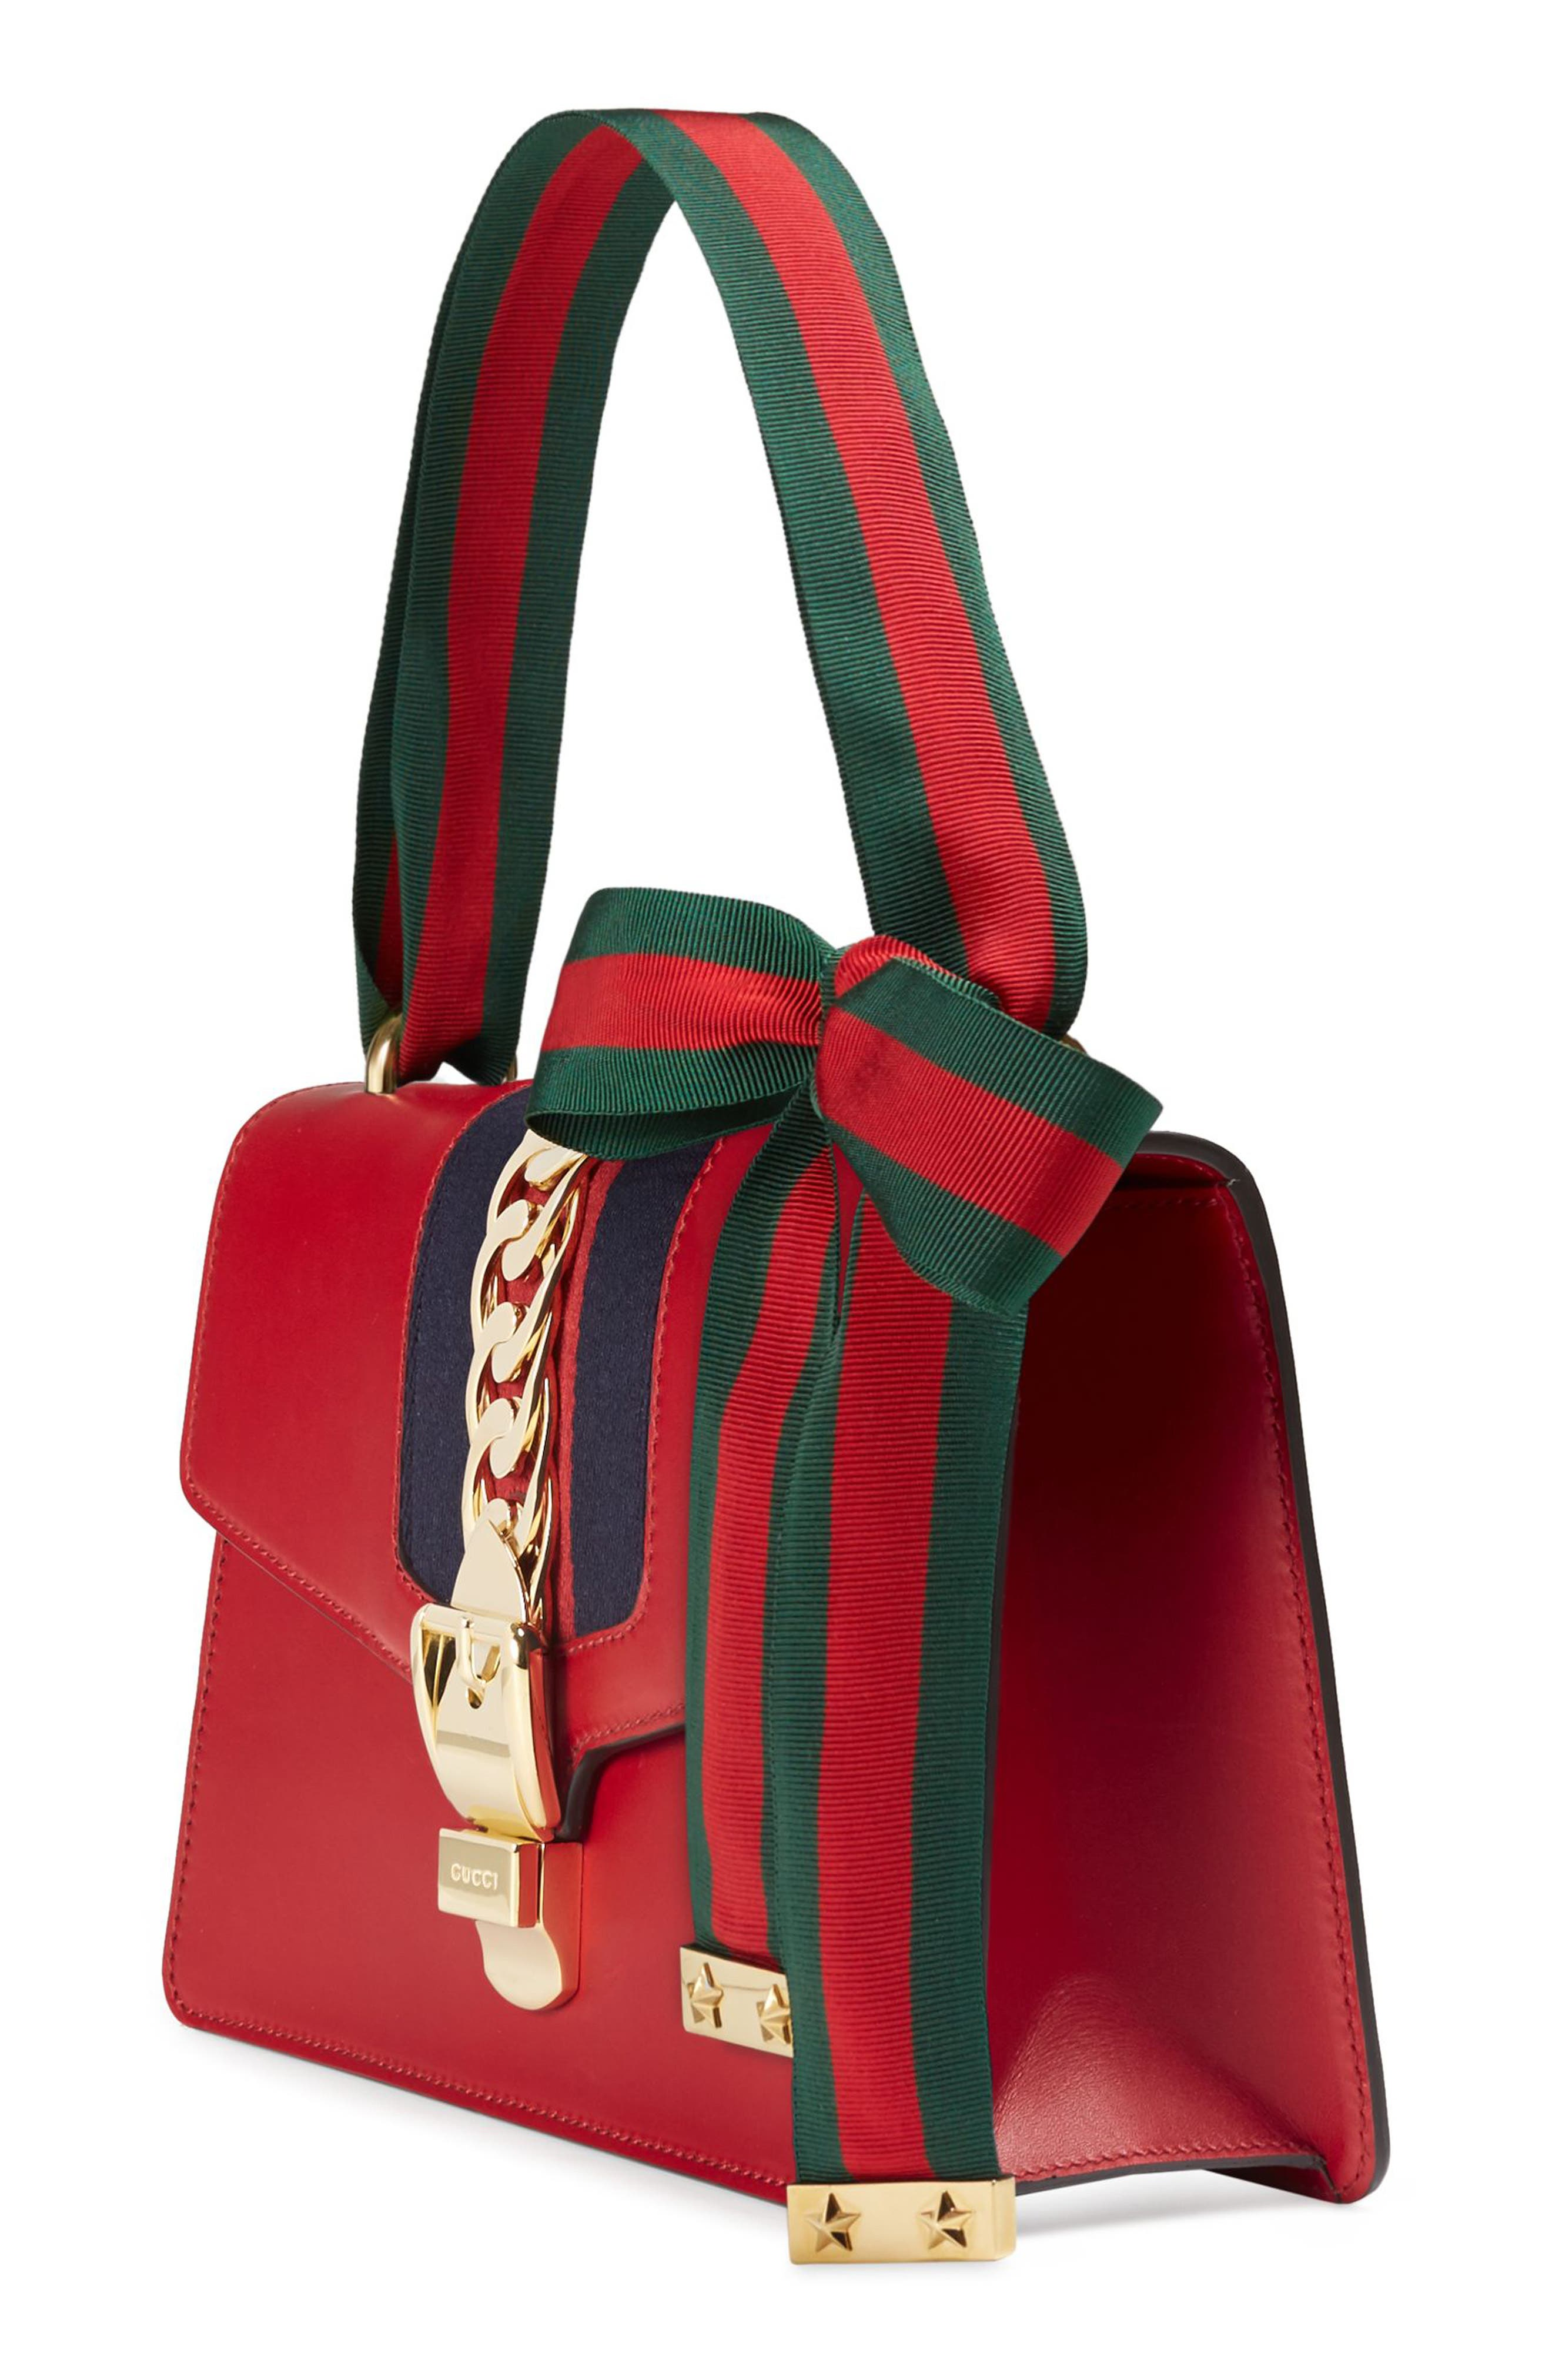 Small Sylvie Leather Shoulder Bag,                             Alternate thumbnail 3, color,                             HIBISCUS RED/ BLUE/ RED